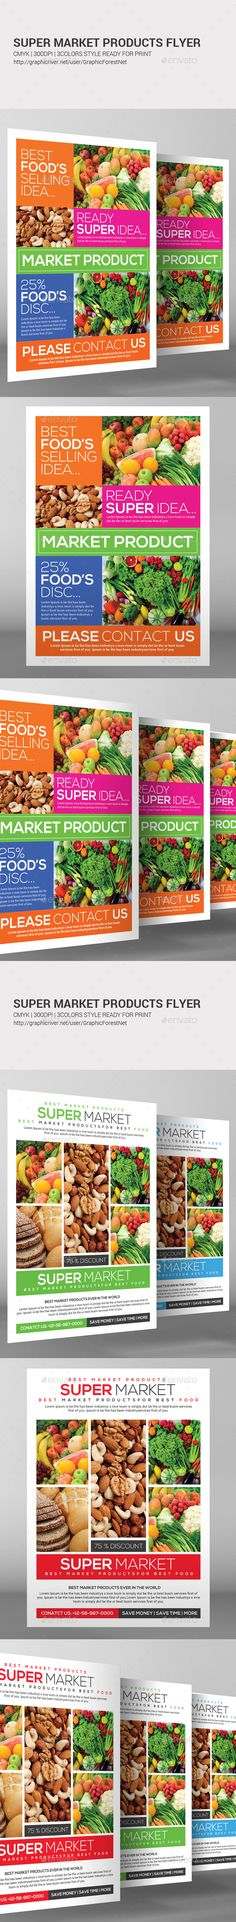 Super Market Products Flyers Bundle